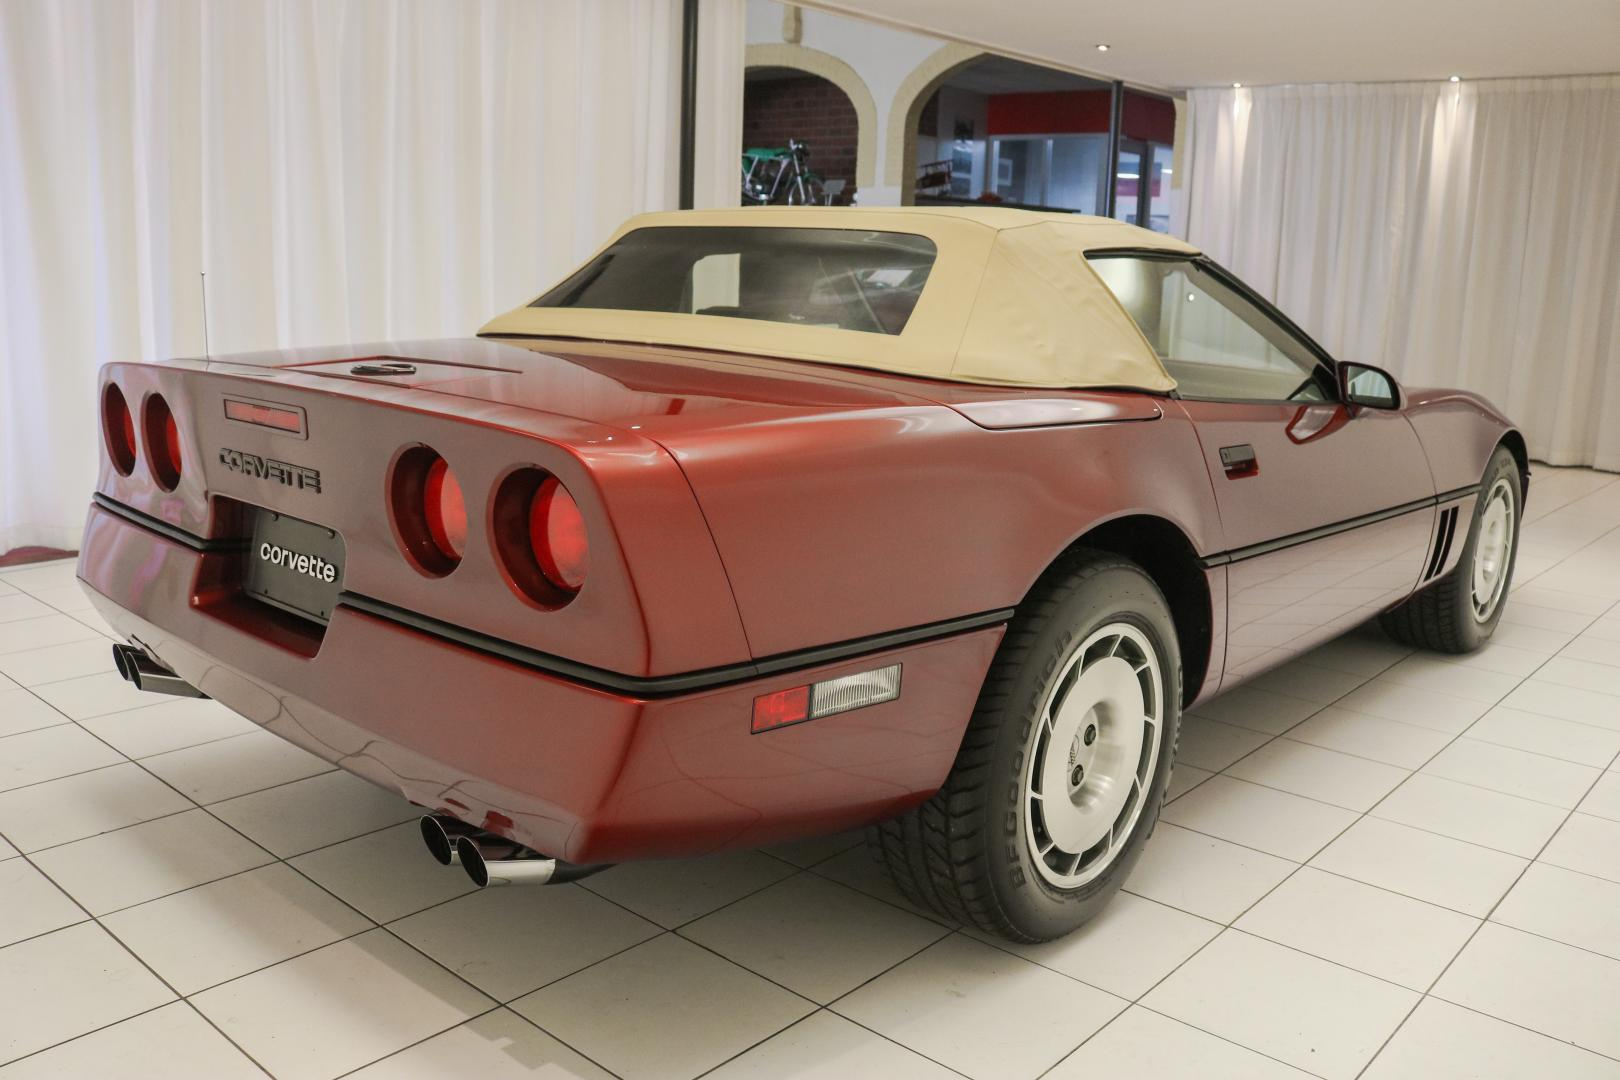 Chevrolet Corvette Pace Car Edition